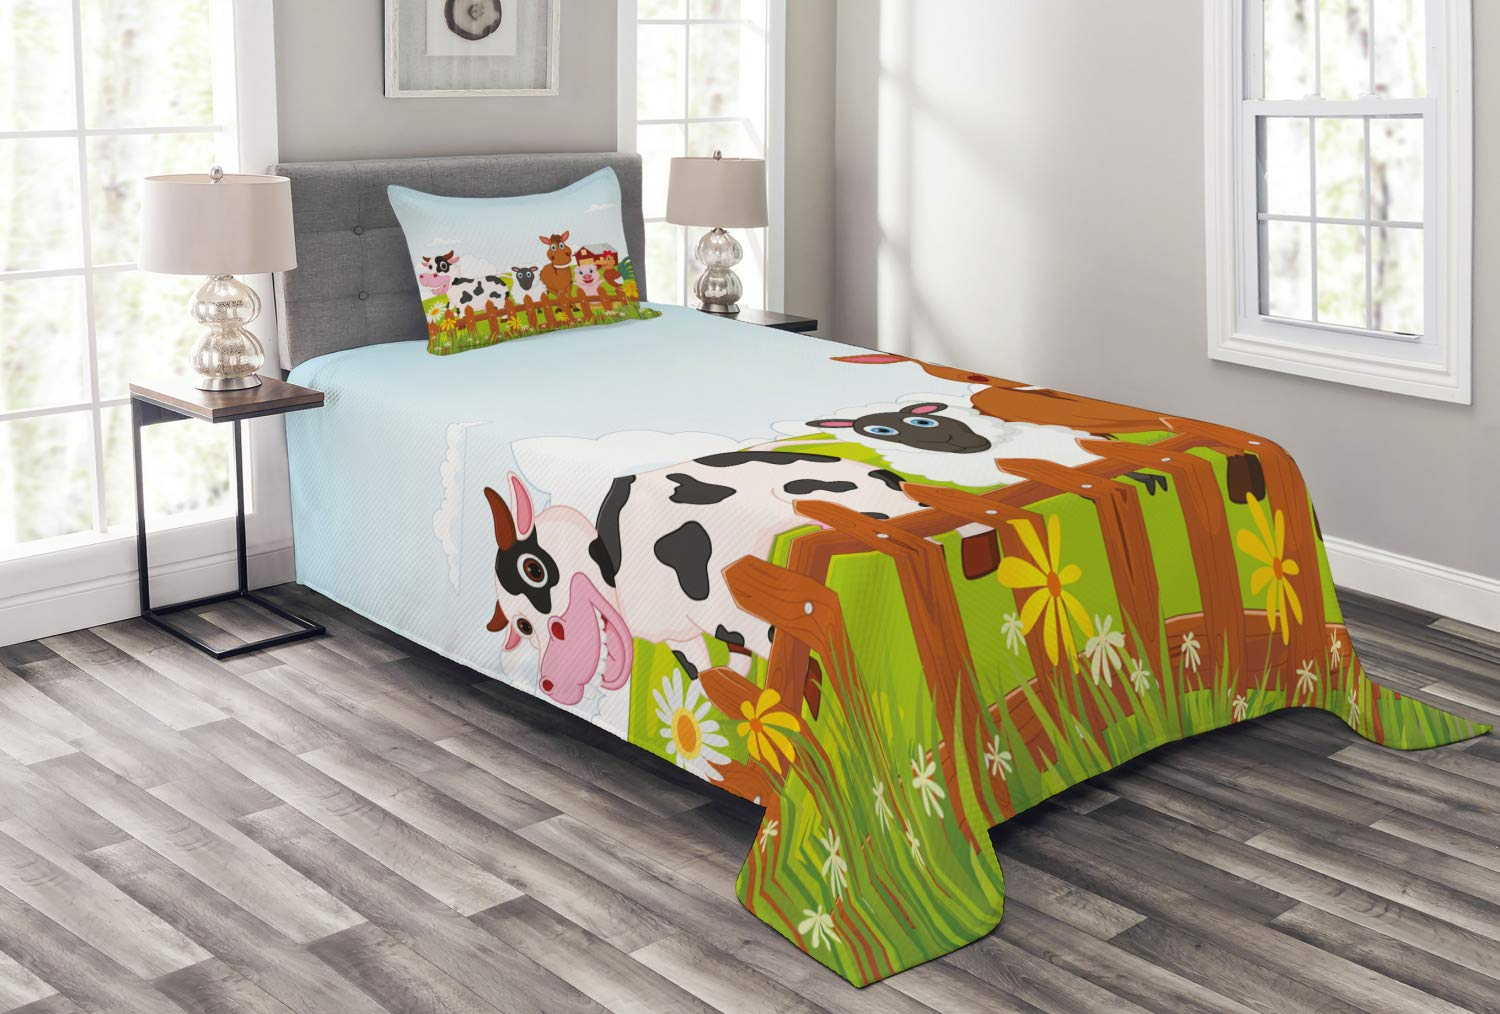 Lunarable Animal Bedspread, Farm Creatures with Cow Horse Goat Pig and Chicken by The Fences Kids Cartoon, Decorative Quilted 2 Piece Coverlet Set with Pillow Sham, Twin Size, Multicolor by Lunarable